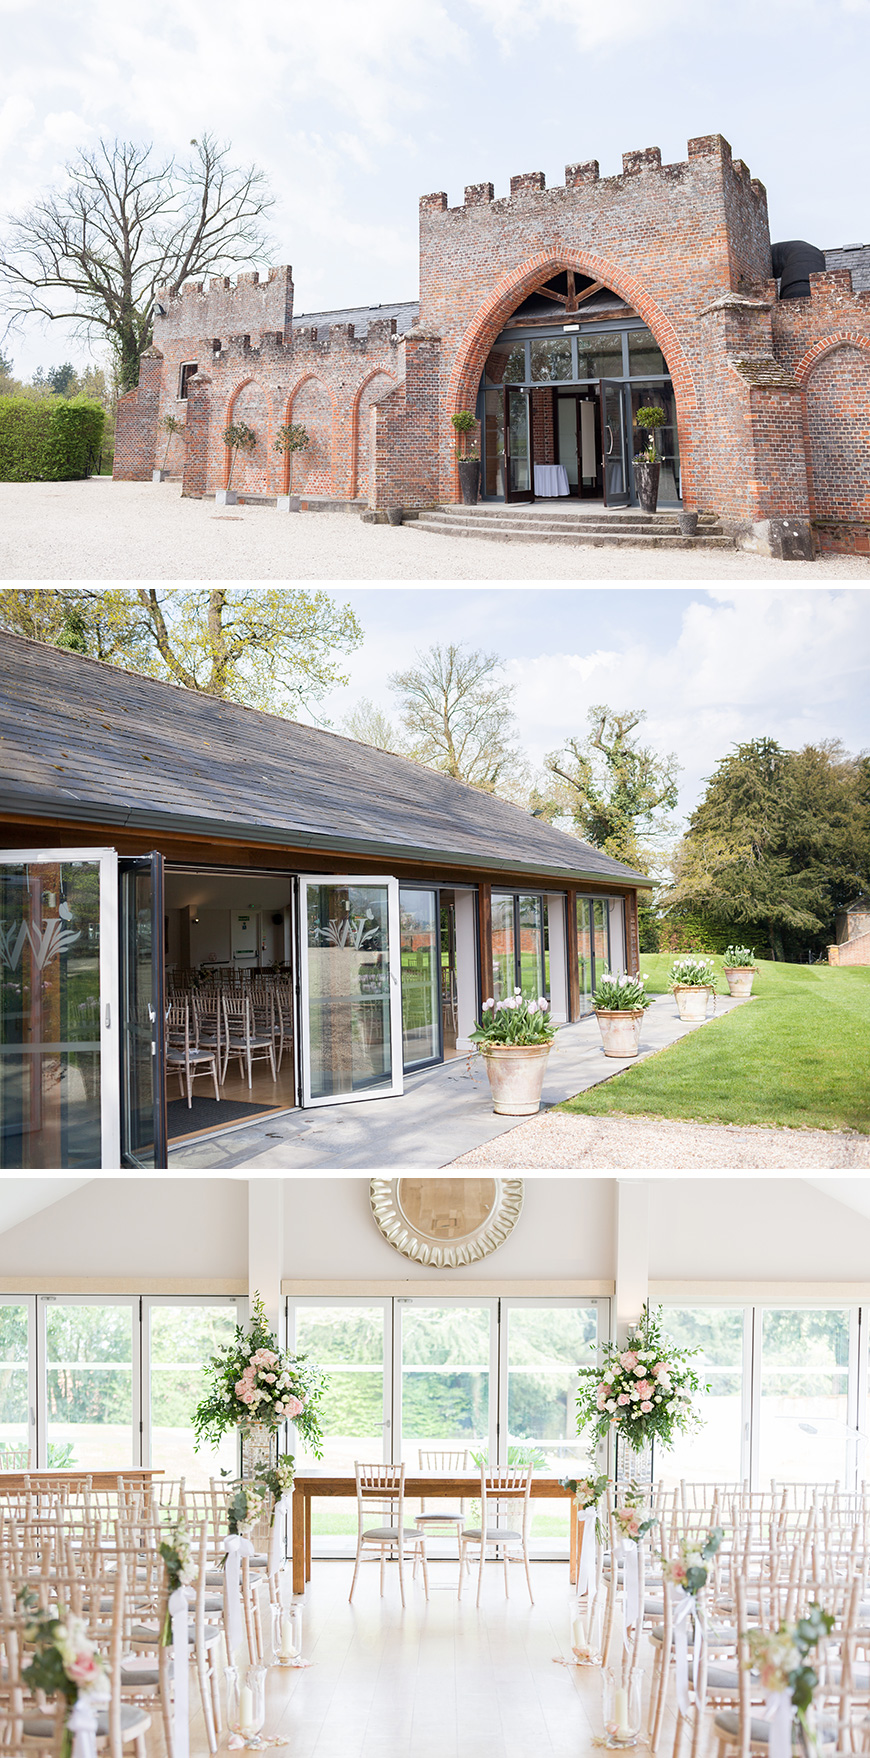 Real Wedding - Rachel and Stuart's Picturesque Spring Wedding at Wasing Park   CHWV